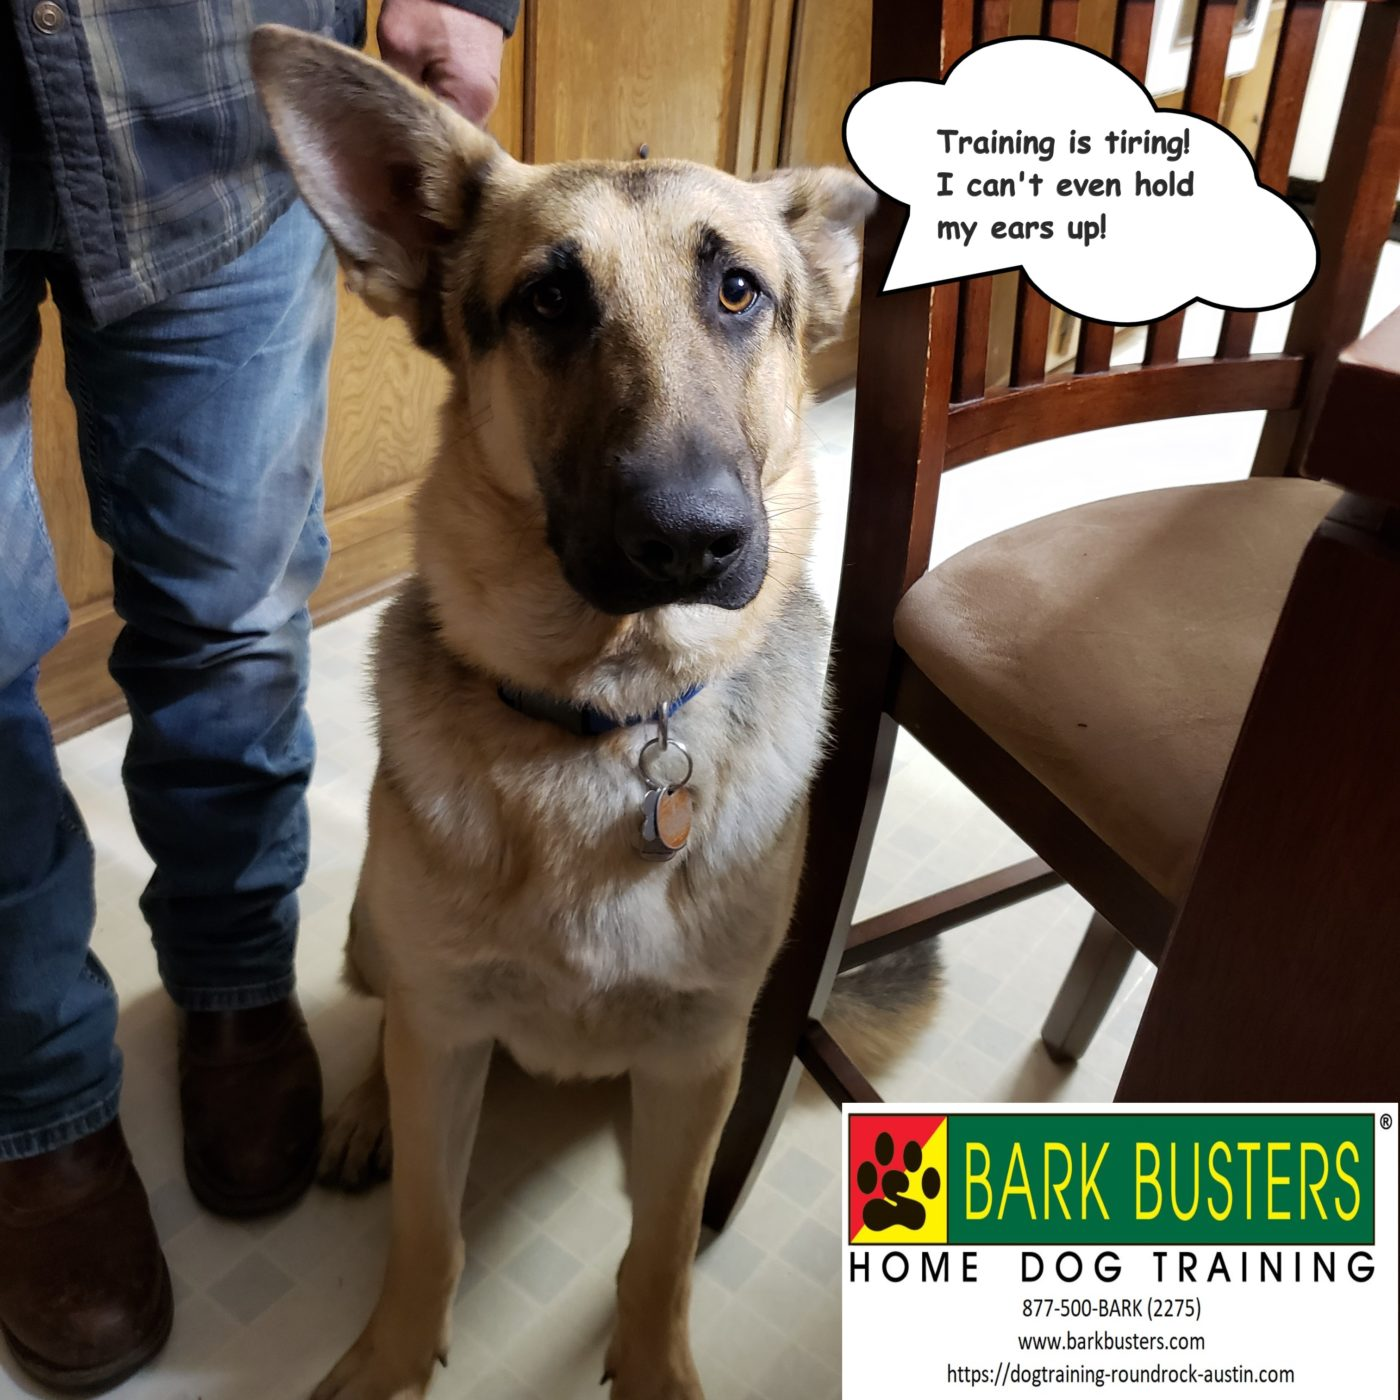 #germanshepherdtraining #dogtraininggeorgetown #dogsofbarkbusters #speakingdog #dogtrainingroundrock